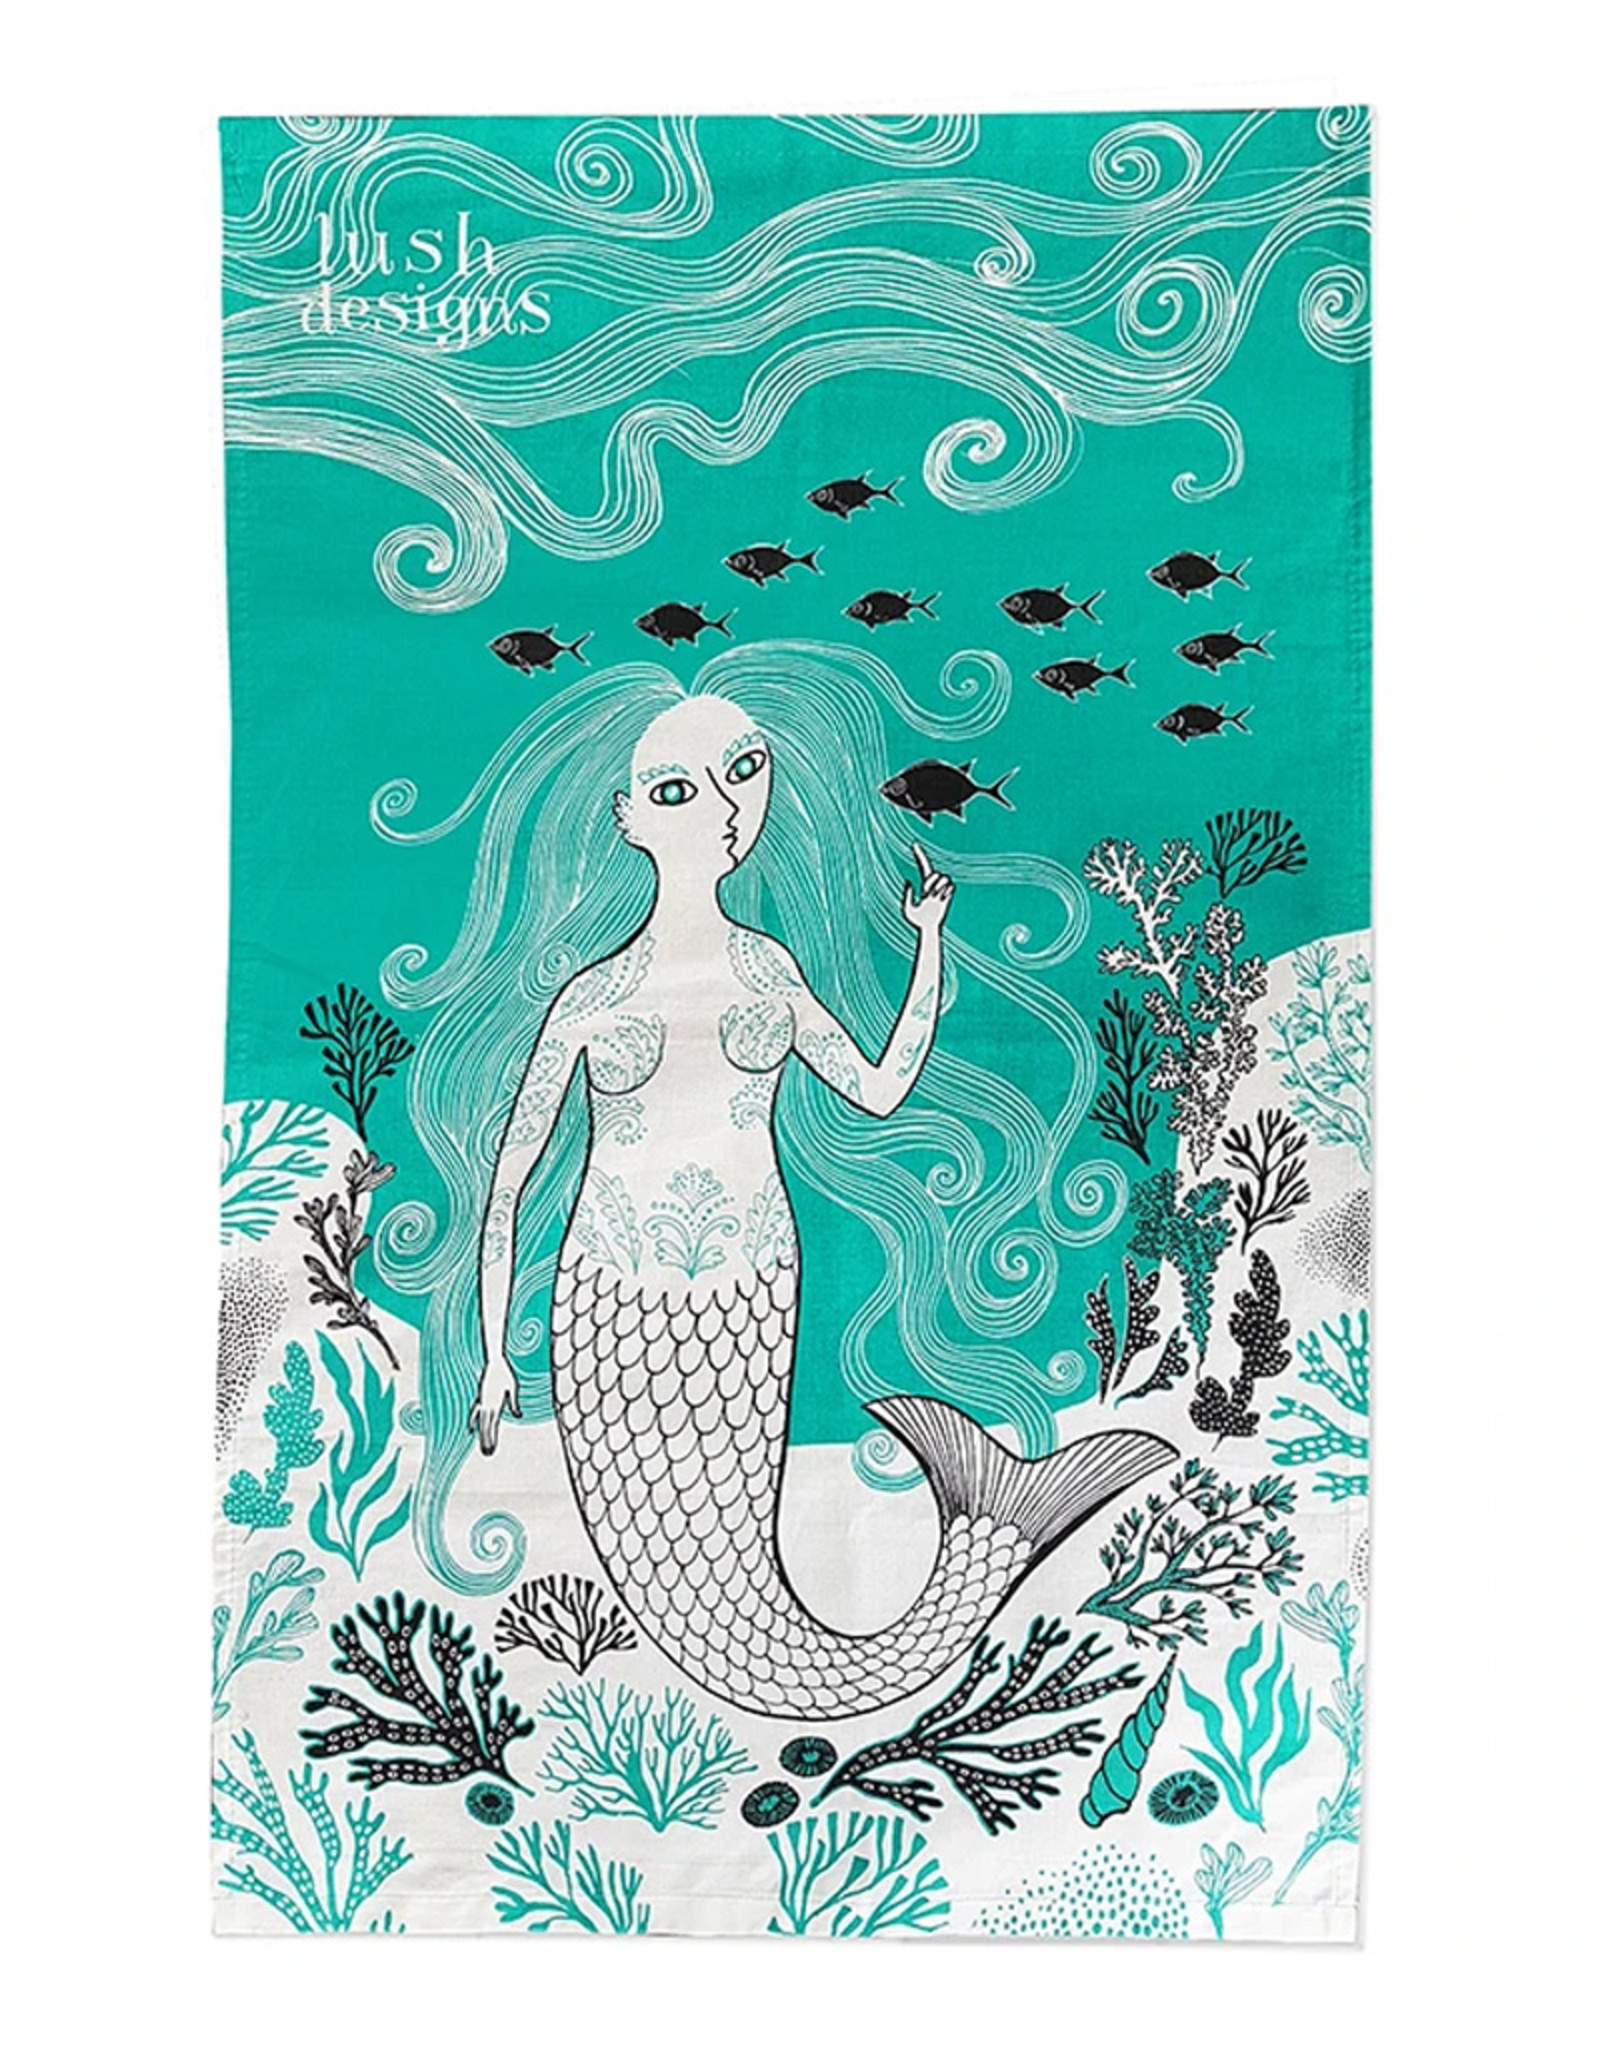 Lush Designs Lush Mermaid tea towel